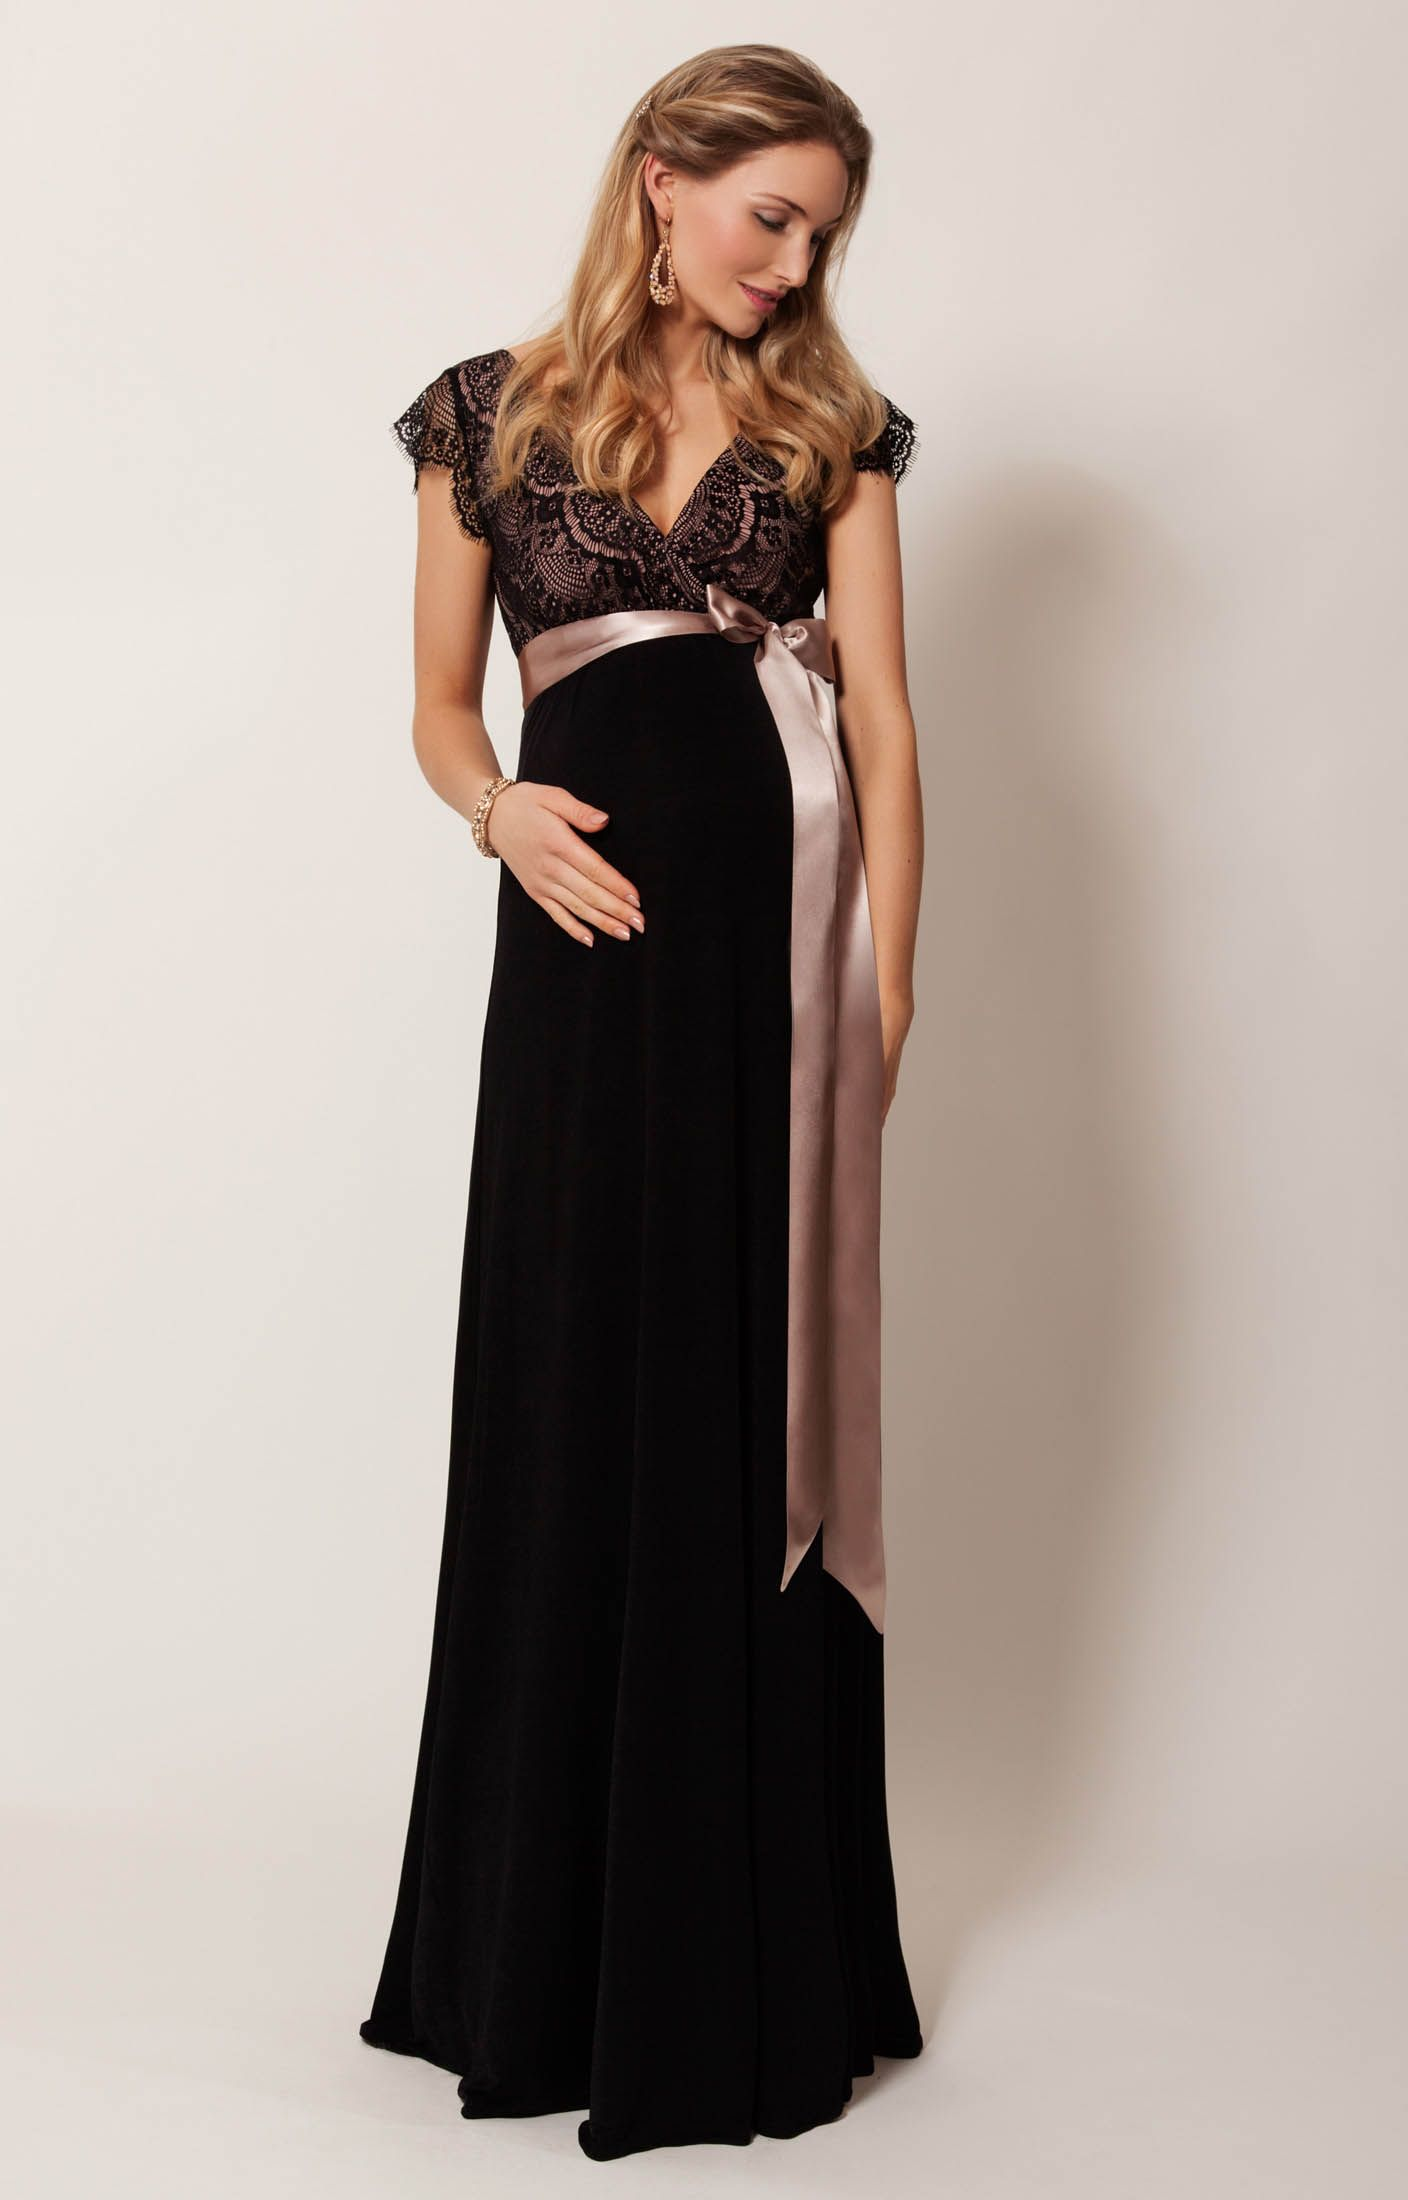 Robe cocktail rouge femme enceinte